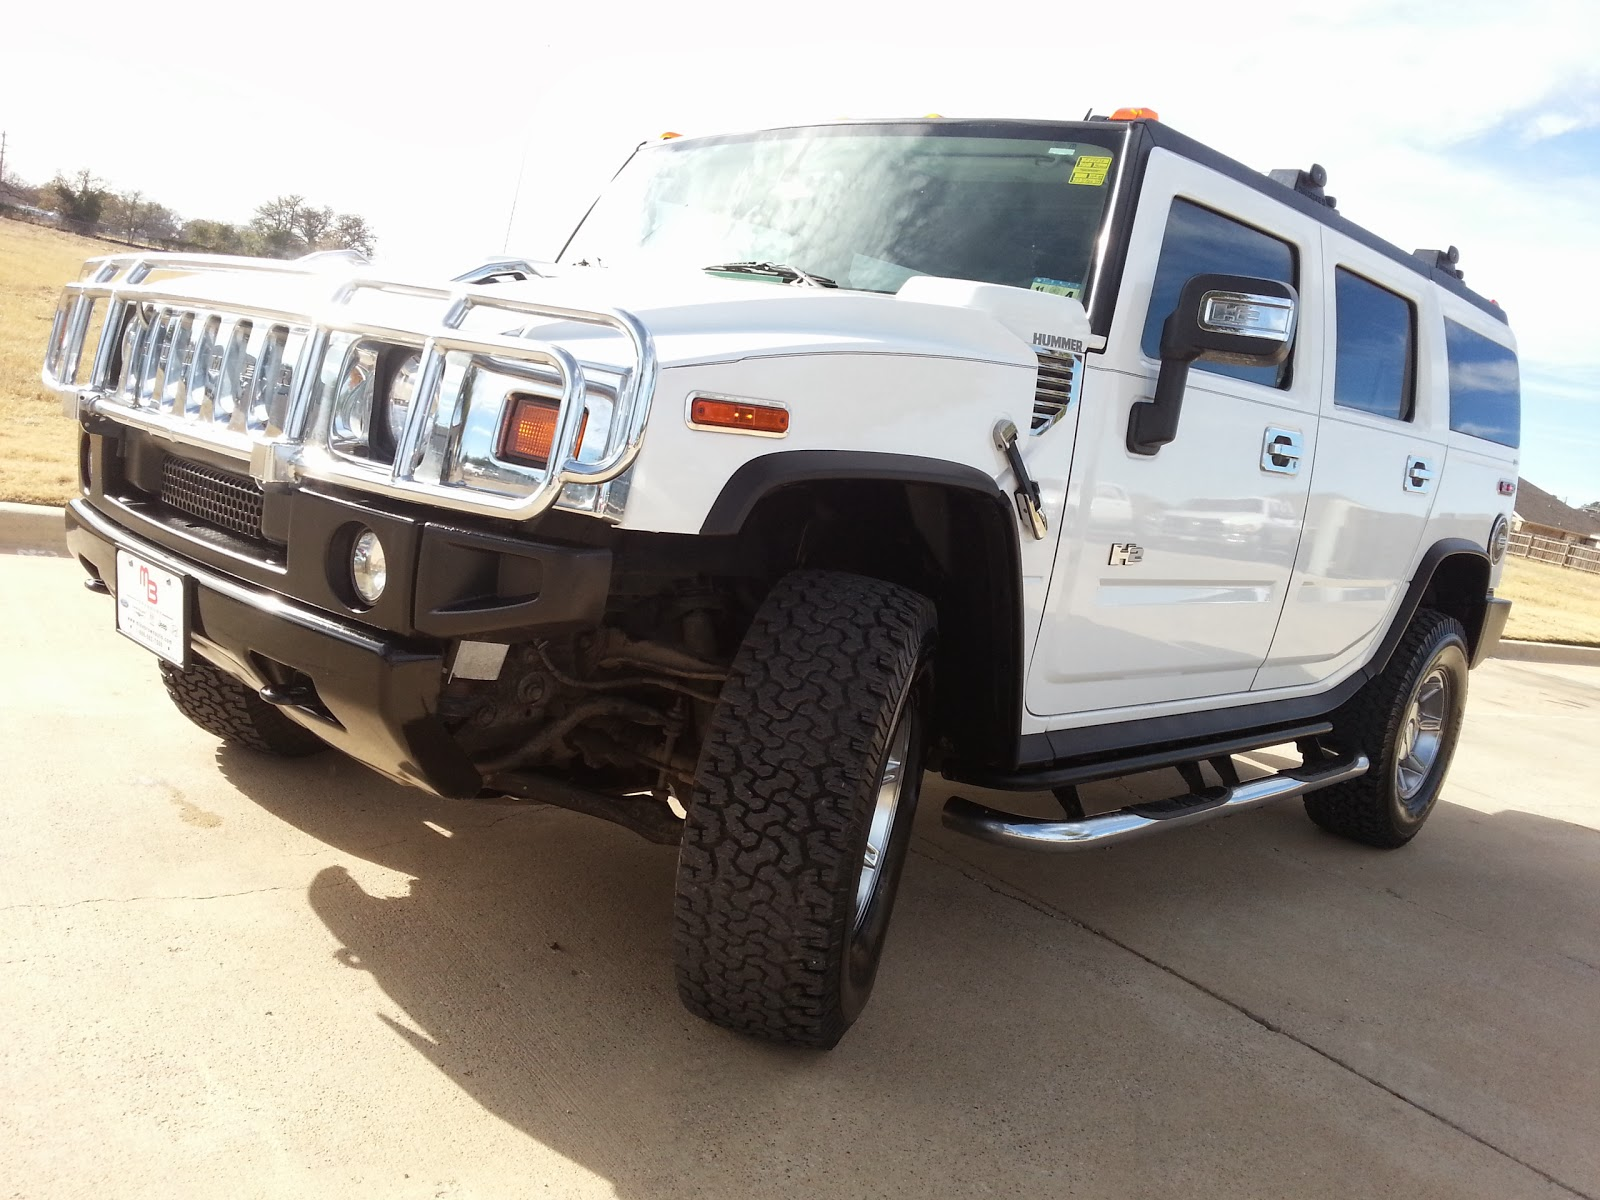 tdy sales 817 243 9840 for sale 29 999 white 2007 hummer h2 tdy sales new lifted truck suv. Black Bedroom Furniture Sets. Home Design Ideas